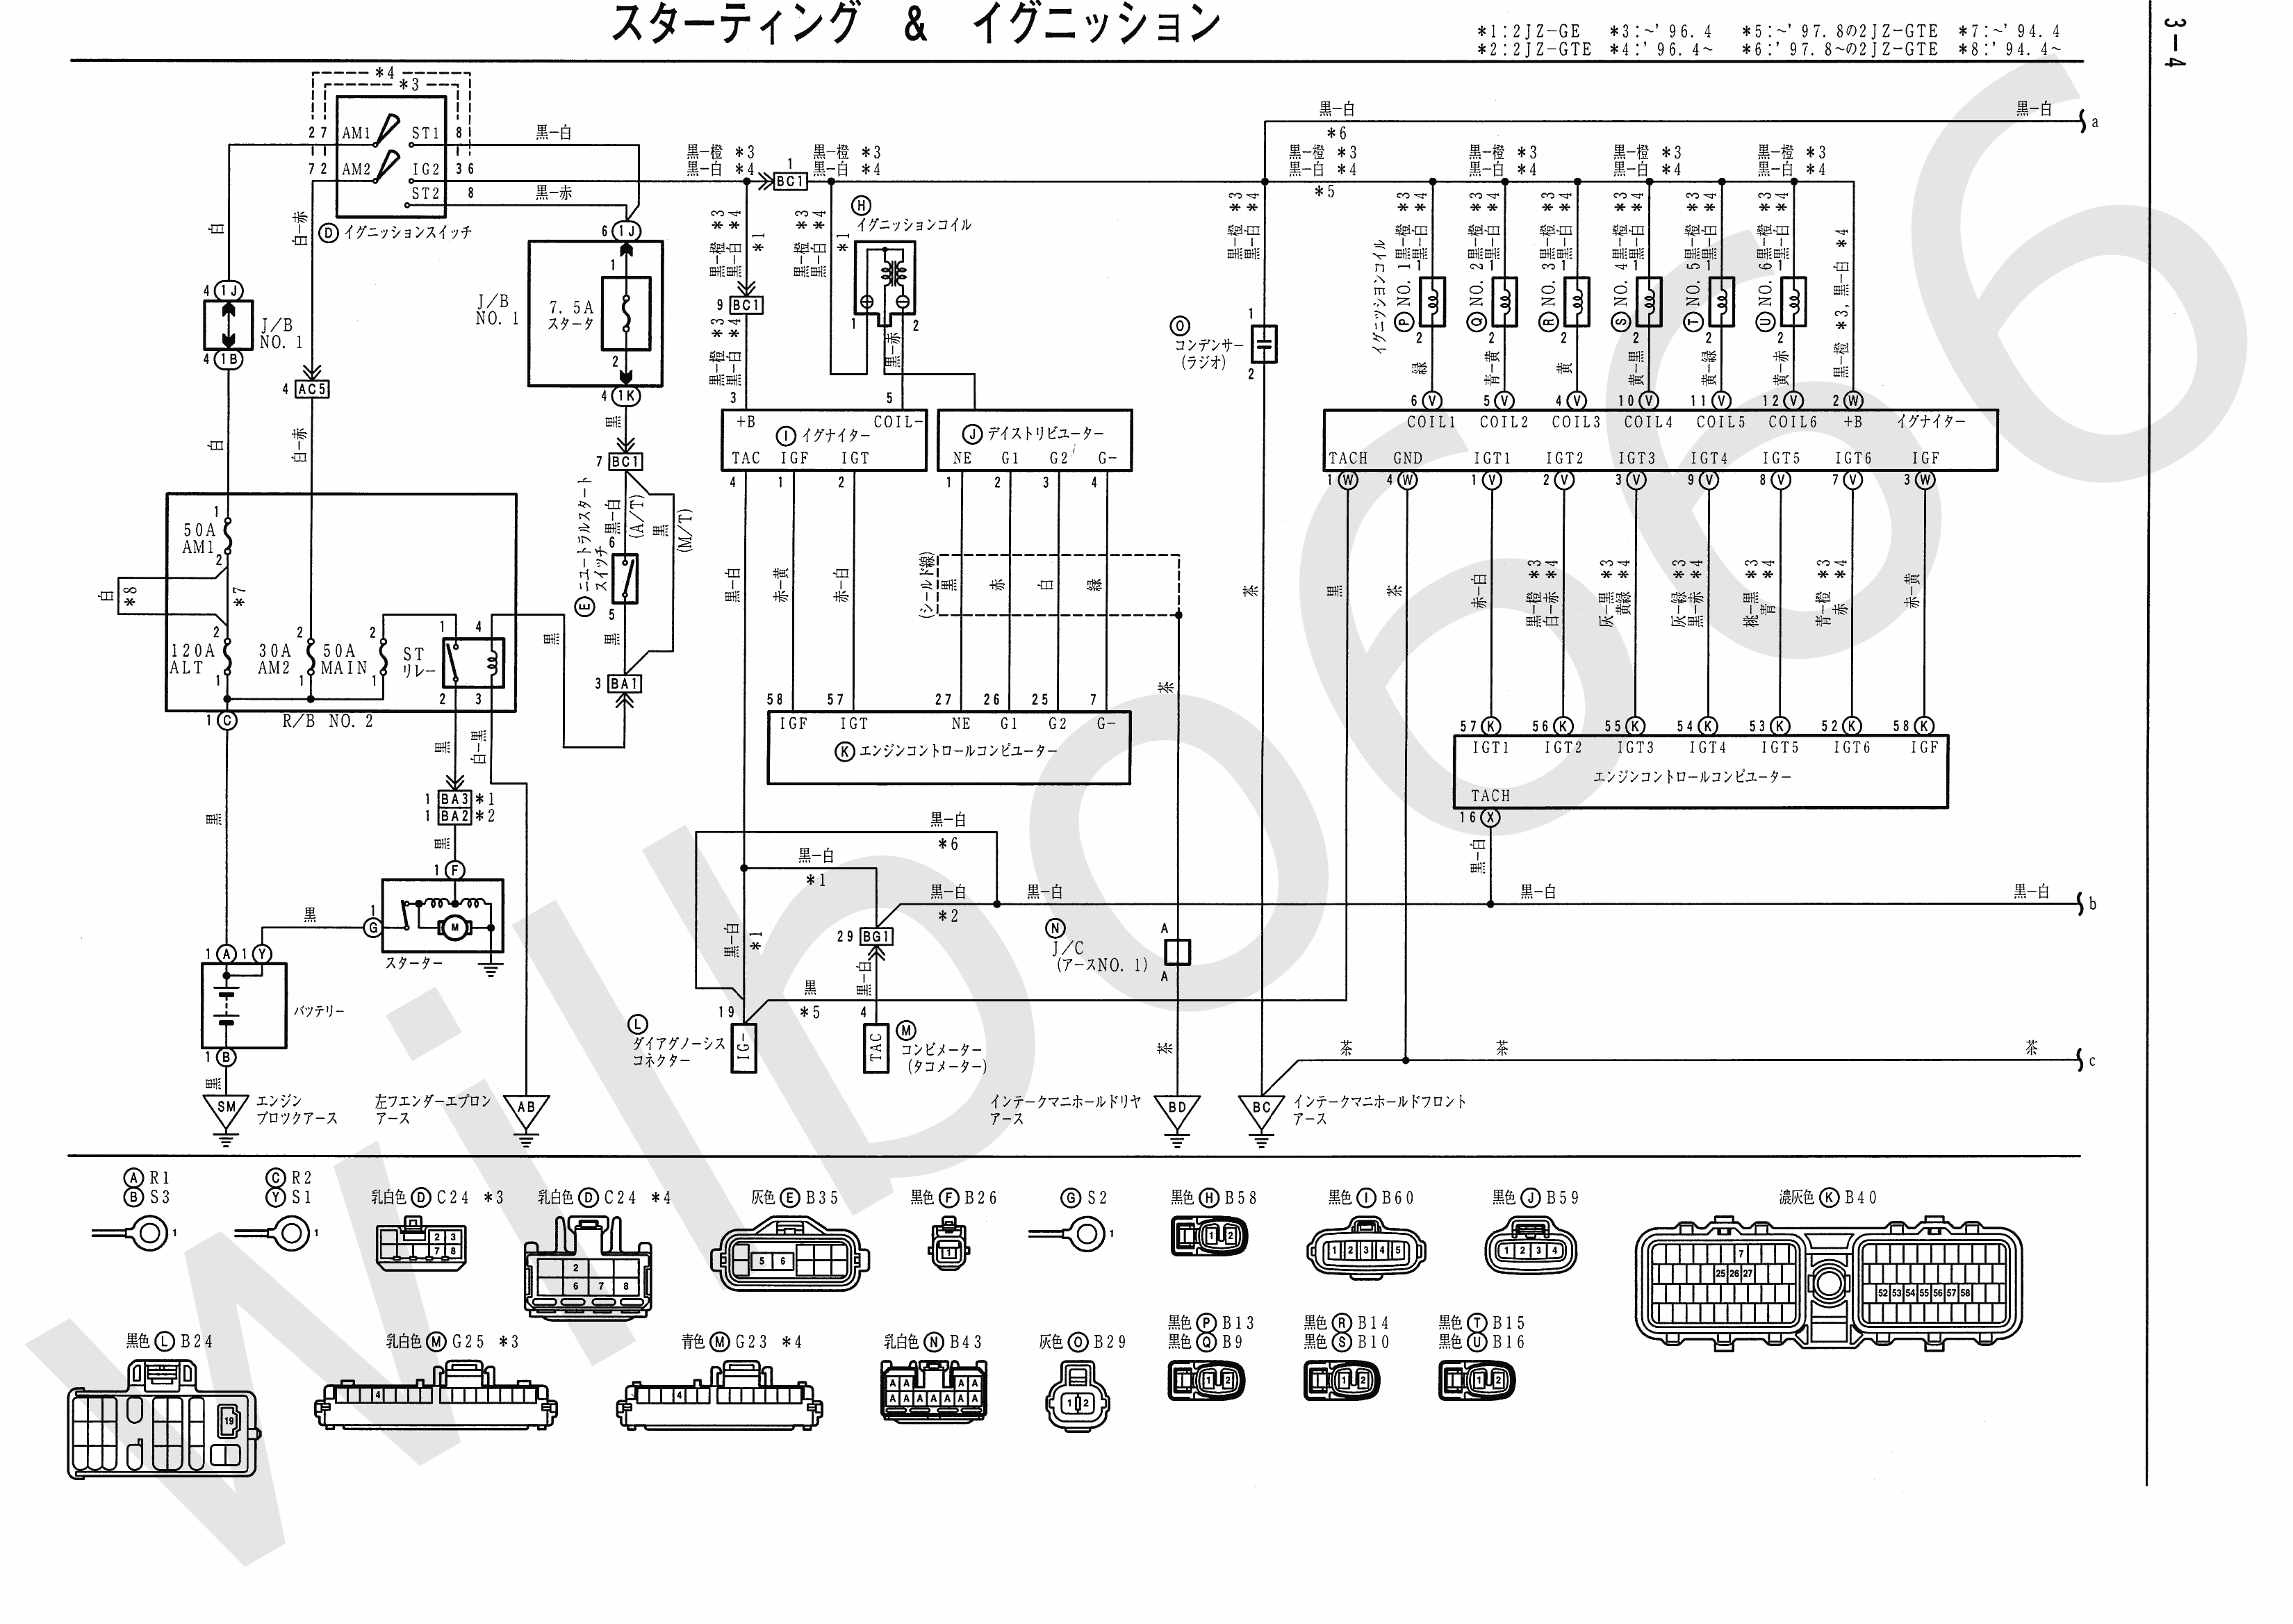 1989 supra turbo engine diagram wiring diagram todays1990 toyota supra engine diagram wiring diagrams 1989 supra turbo rh drive 1989 supra turbo engine diagram